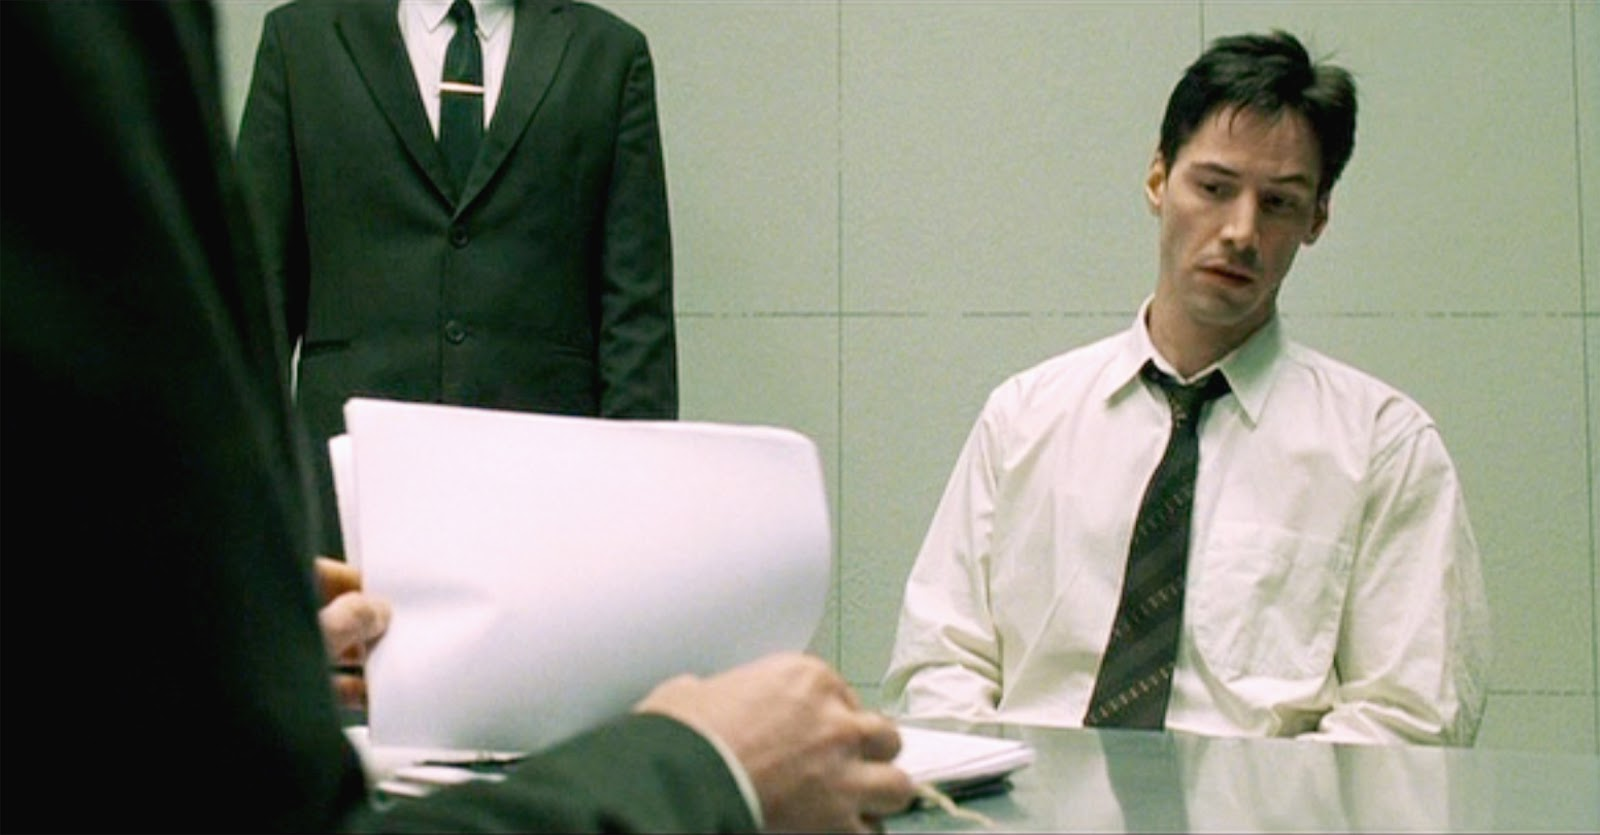 matrix the page 1 of 7 seen here keanu reeves as thomas a anderson neo being held and questioned